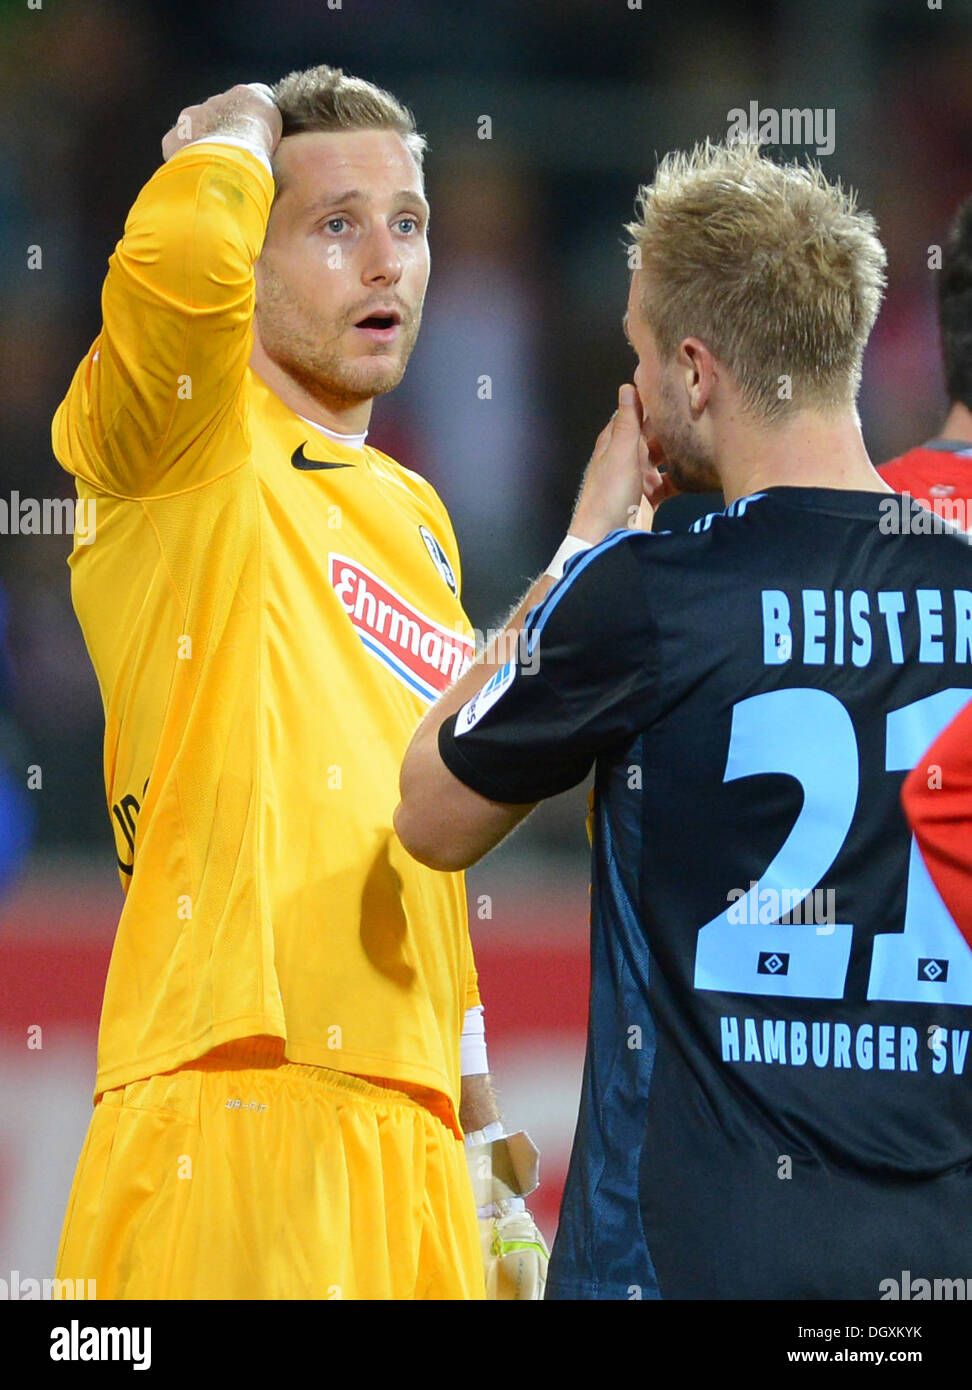 Freiburg, Germany. 27th Oct, 2013. Freiburg's goalkeeper Oliver Baumann (L) and Hamburg's Maximilian Beister (R) after the German Bundesliga soccer match between SC Freiburg and Hamburger SV at the Mage Solar Stadium in Freiburg, Germany, 27 October 2013. Photo: PATRICK SEEGER (ATTENTION: Due to the accreditation guidelines, the DFL only permits the publication and utilisation of up to 15 pictures per match on the internet and in online media during the match.)/dpa/Alamy Live News - Stock Image